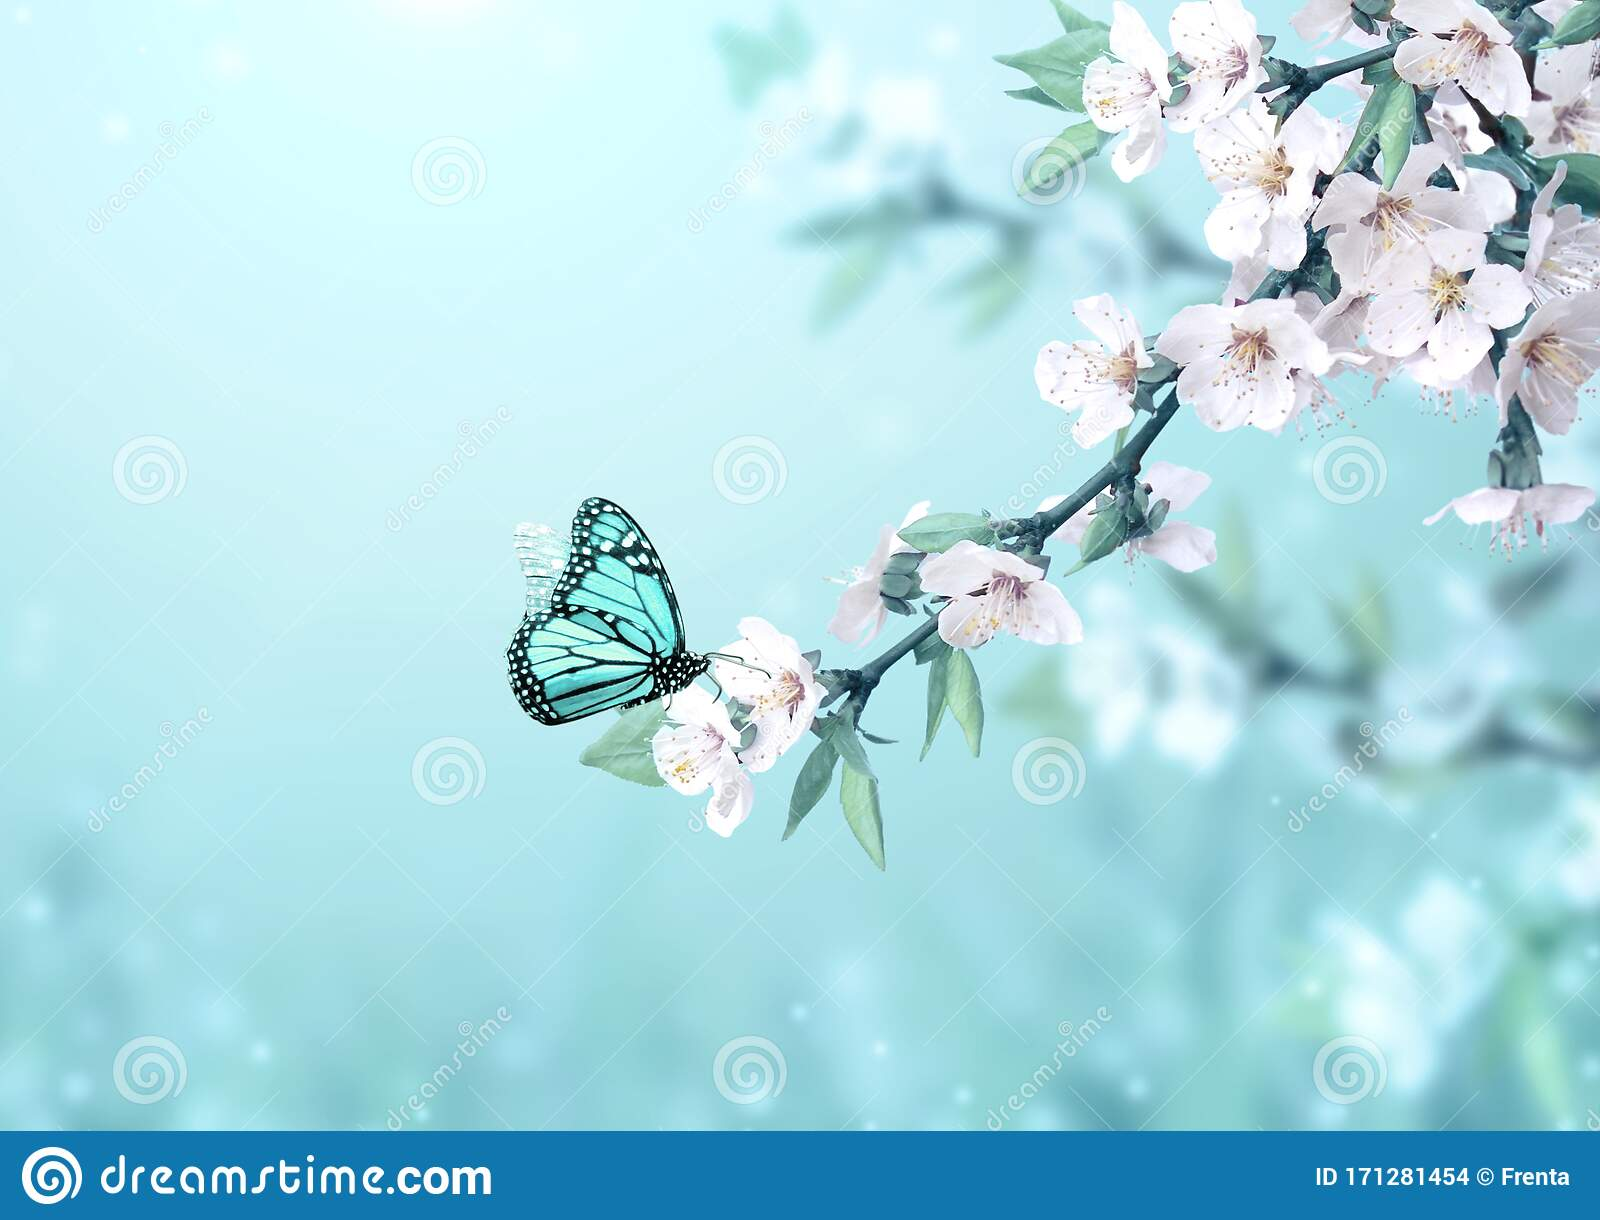 3 450 Magic Butterfly Photos Free Royalty Free Stock Photos From Dreamstime,Tapered Rectangular Lamp Shades Uk